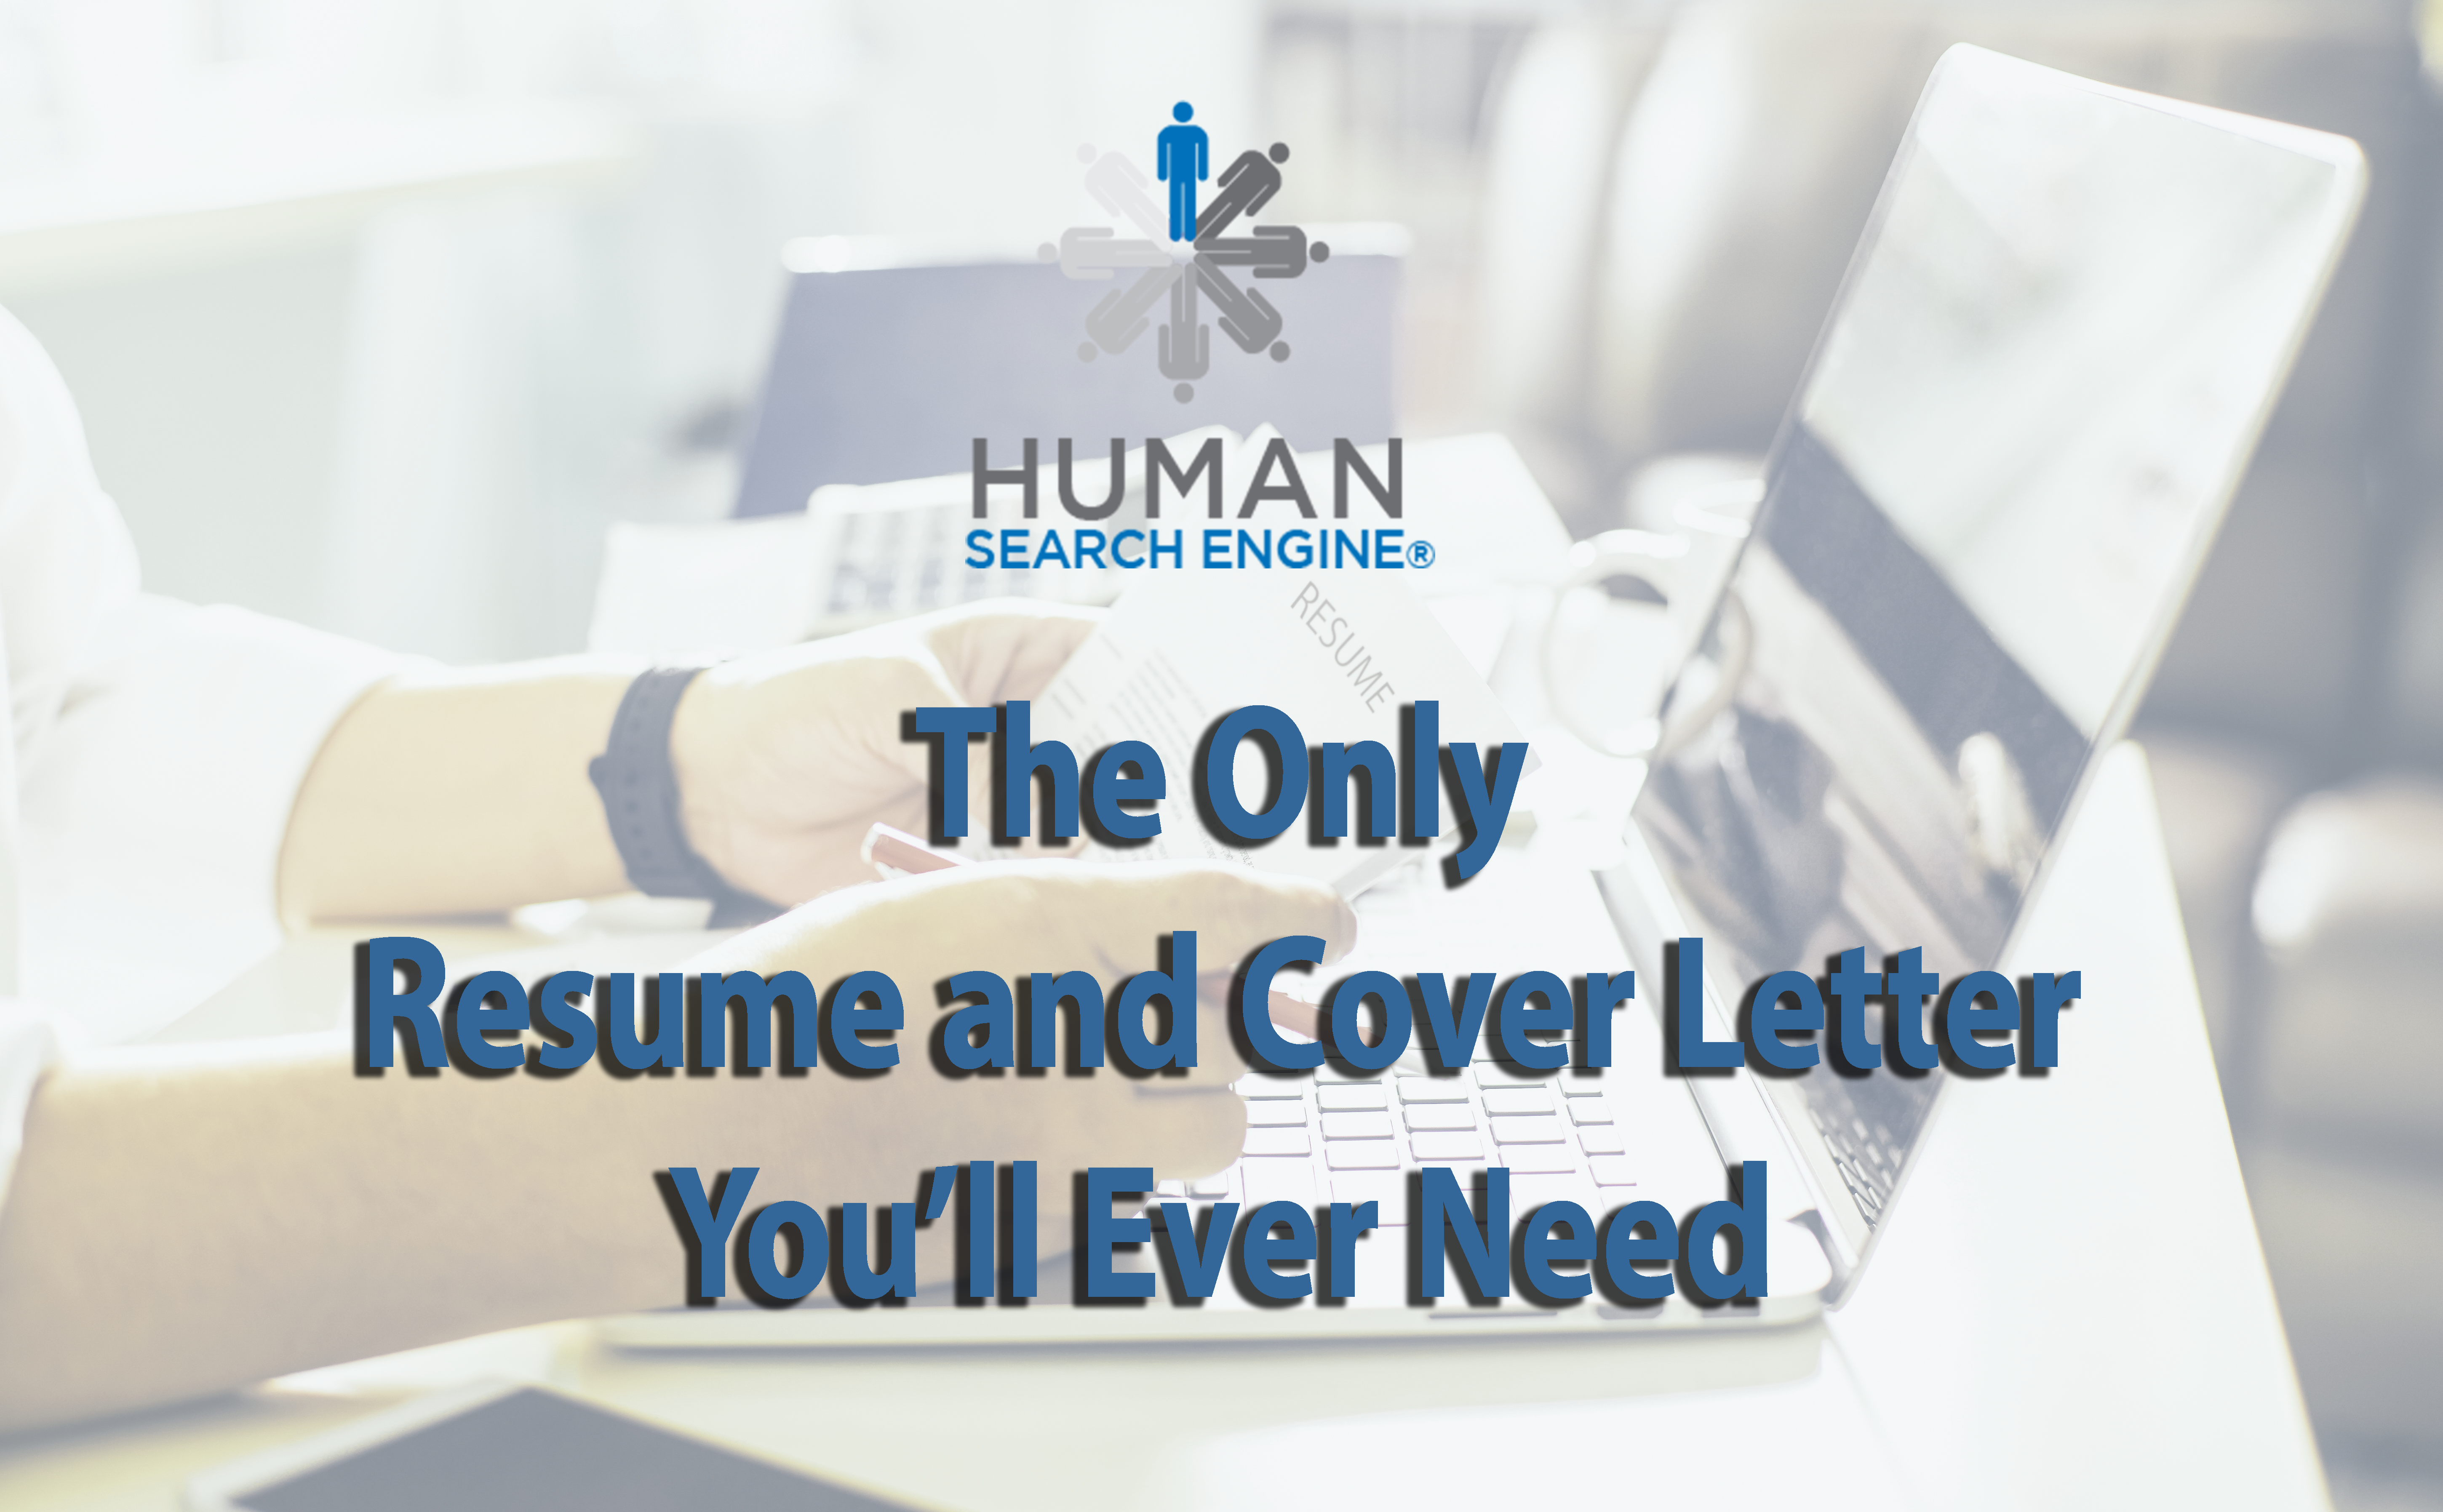 The Only Resume and Cover Letter You'll Ever Need